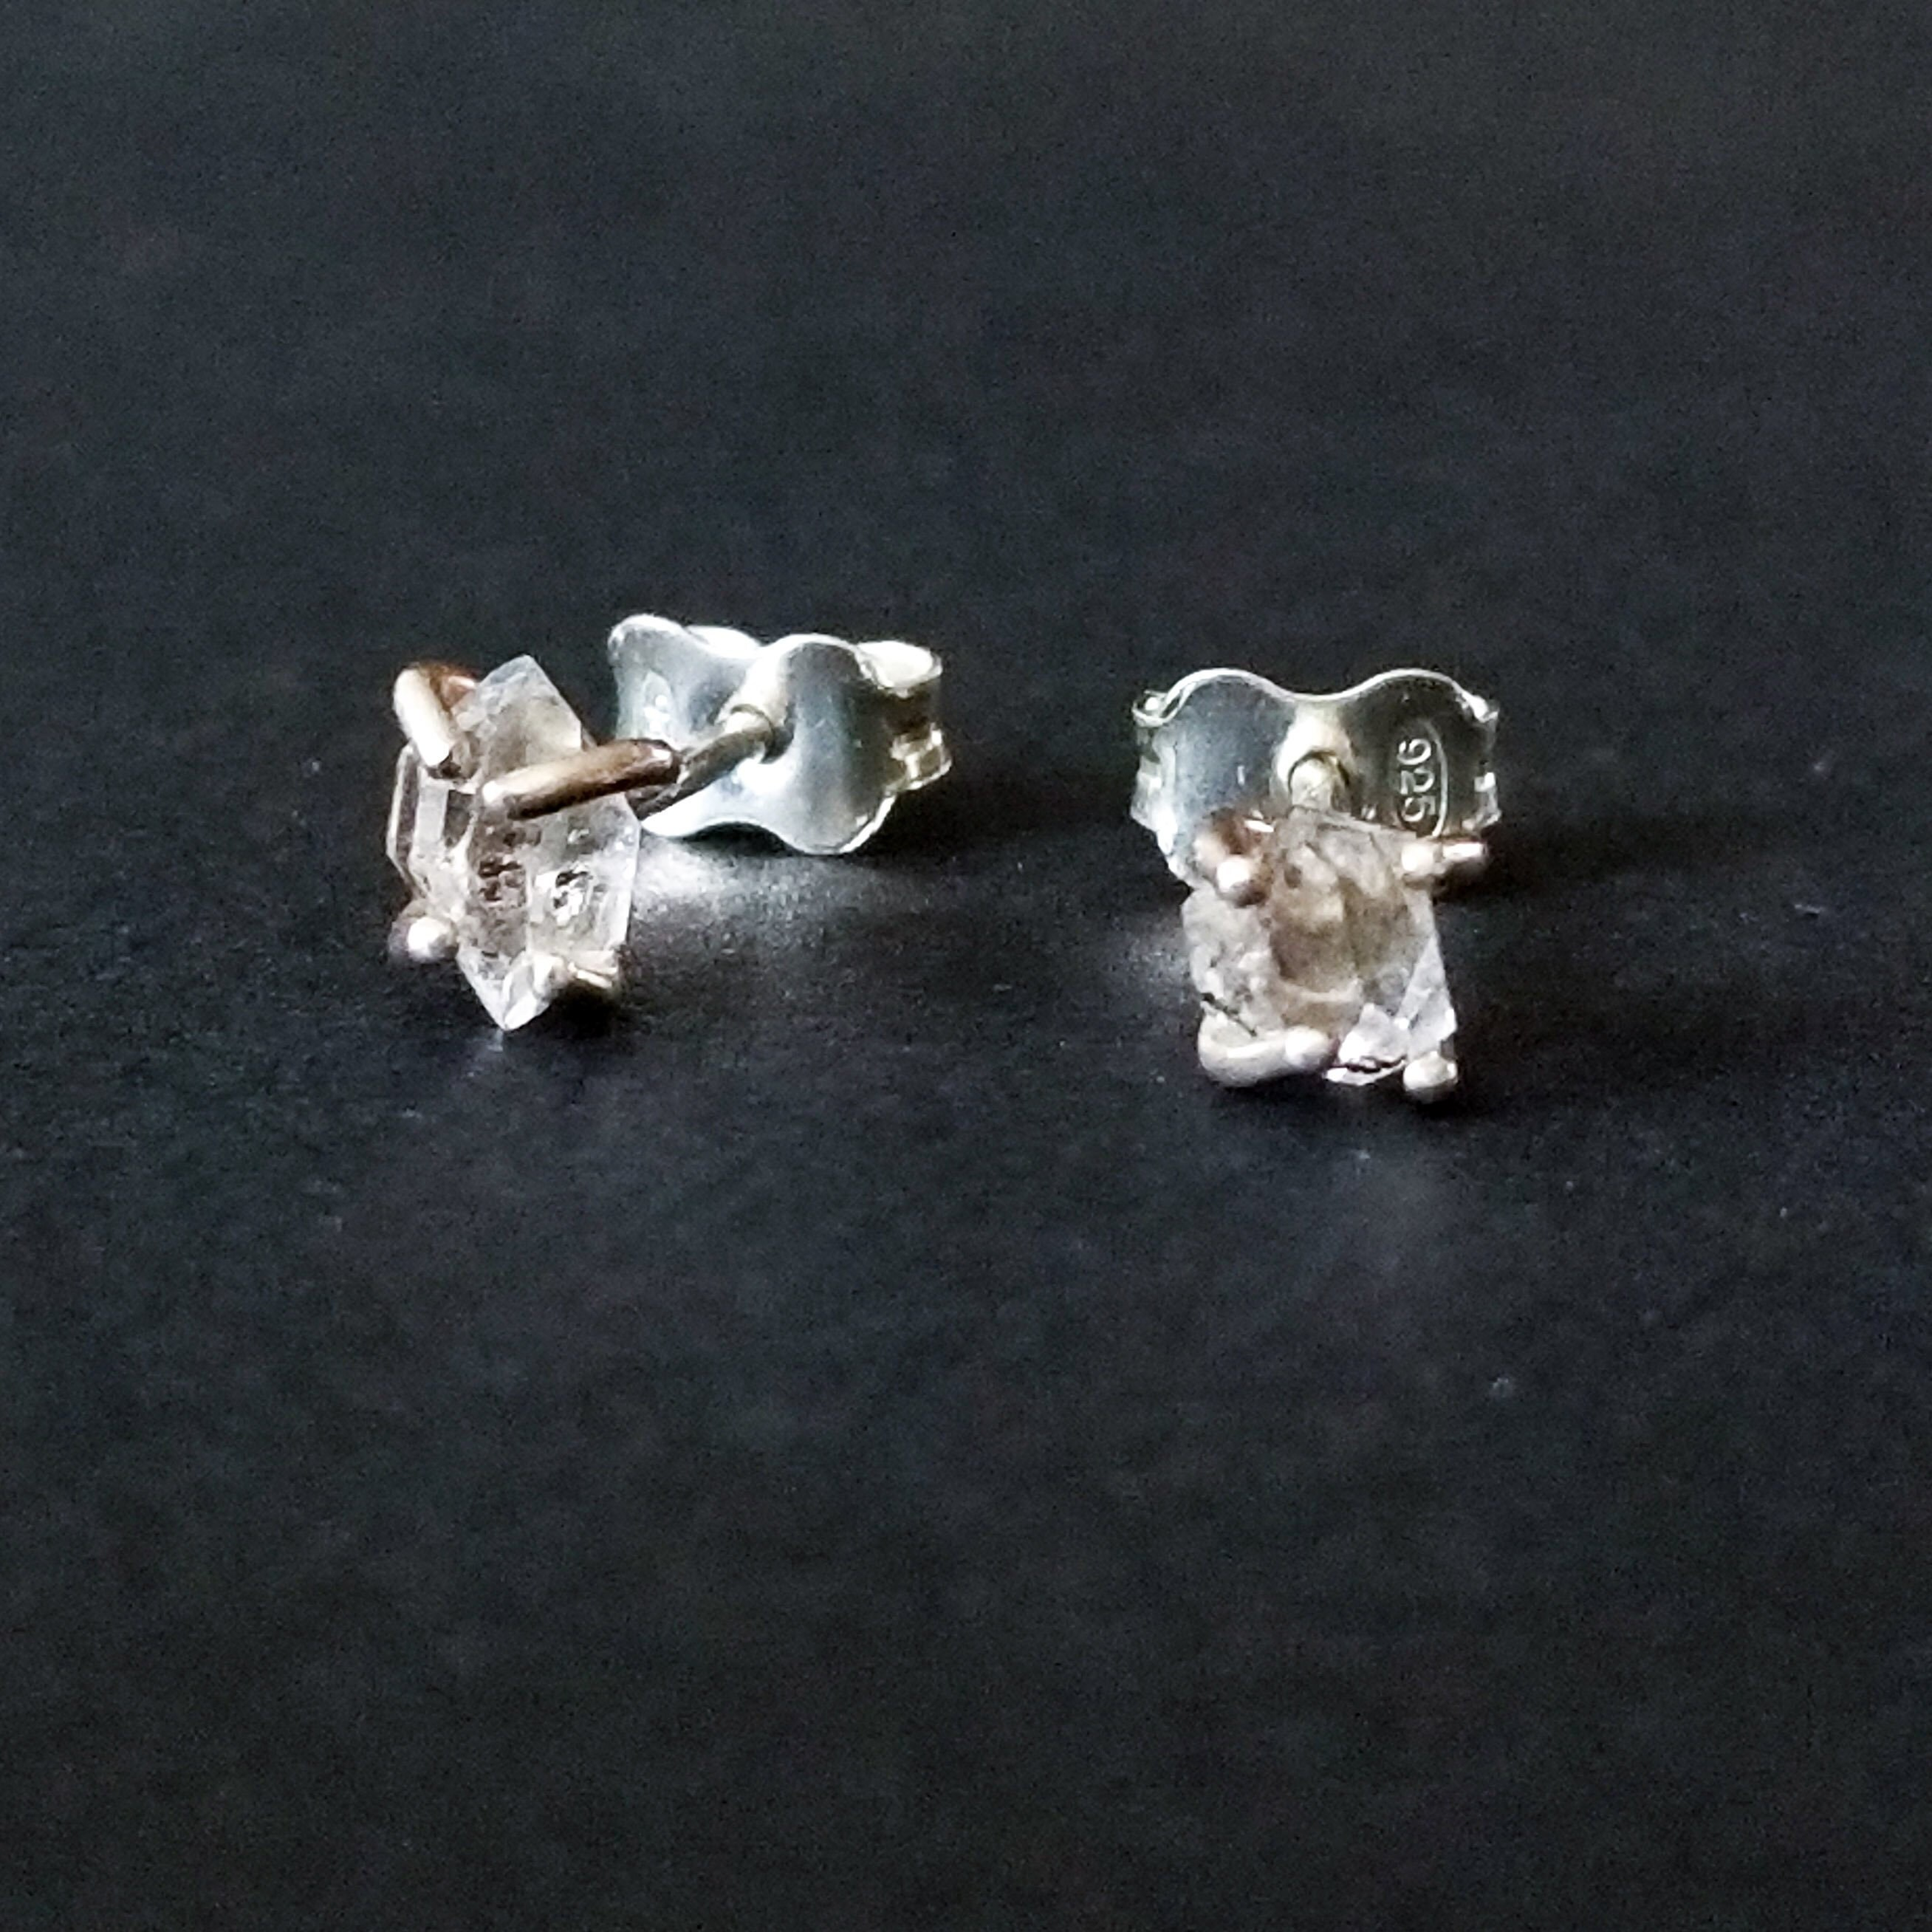 inchoo bijoux herkimer diamond earrings